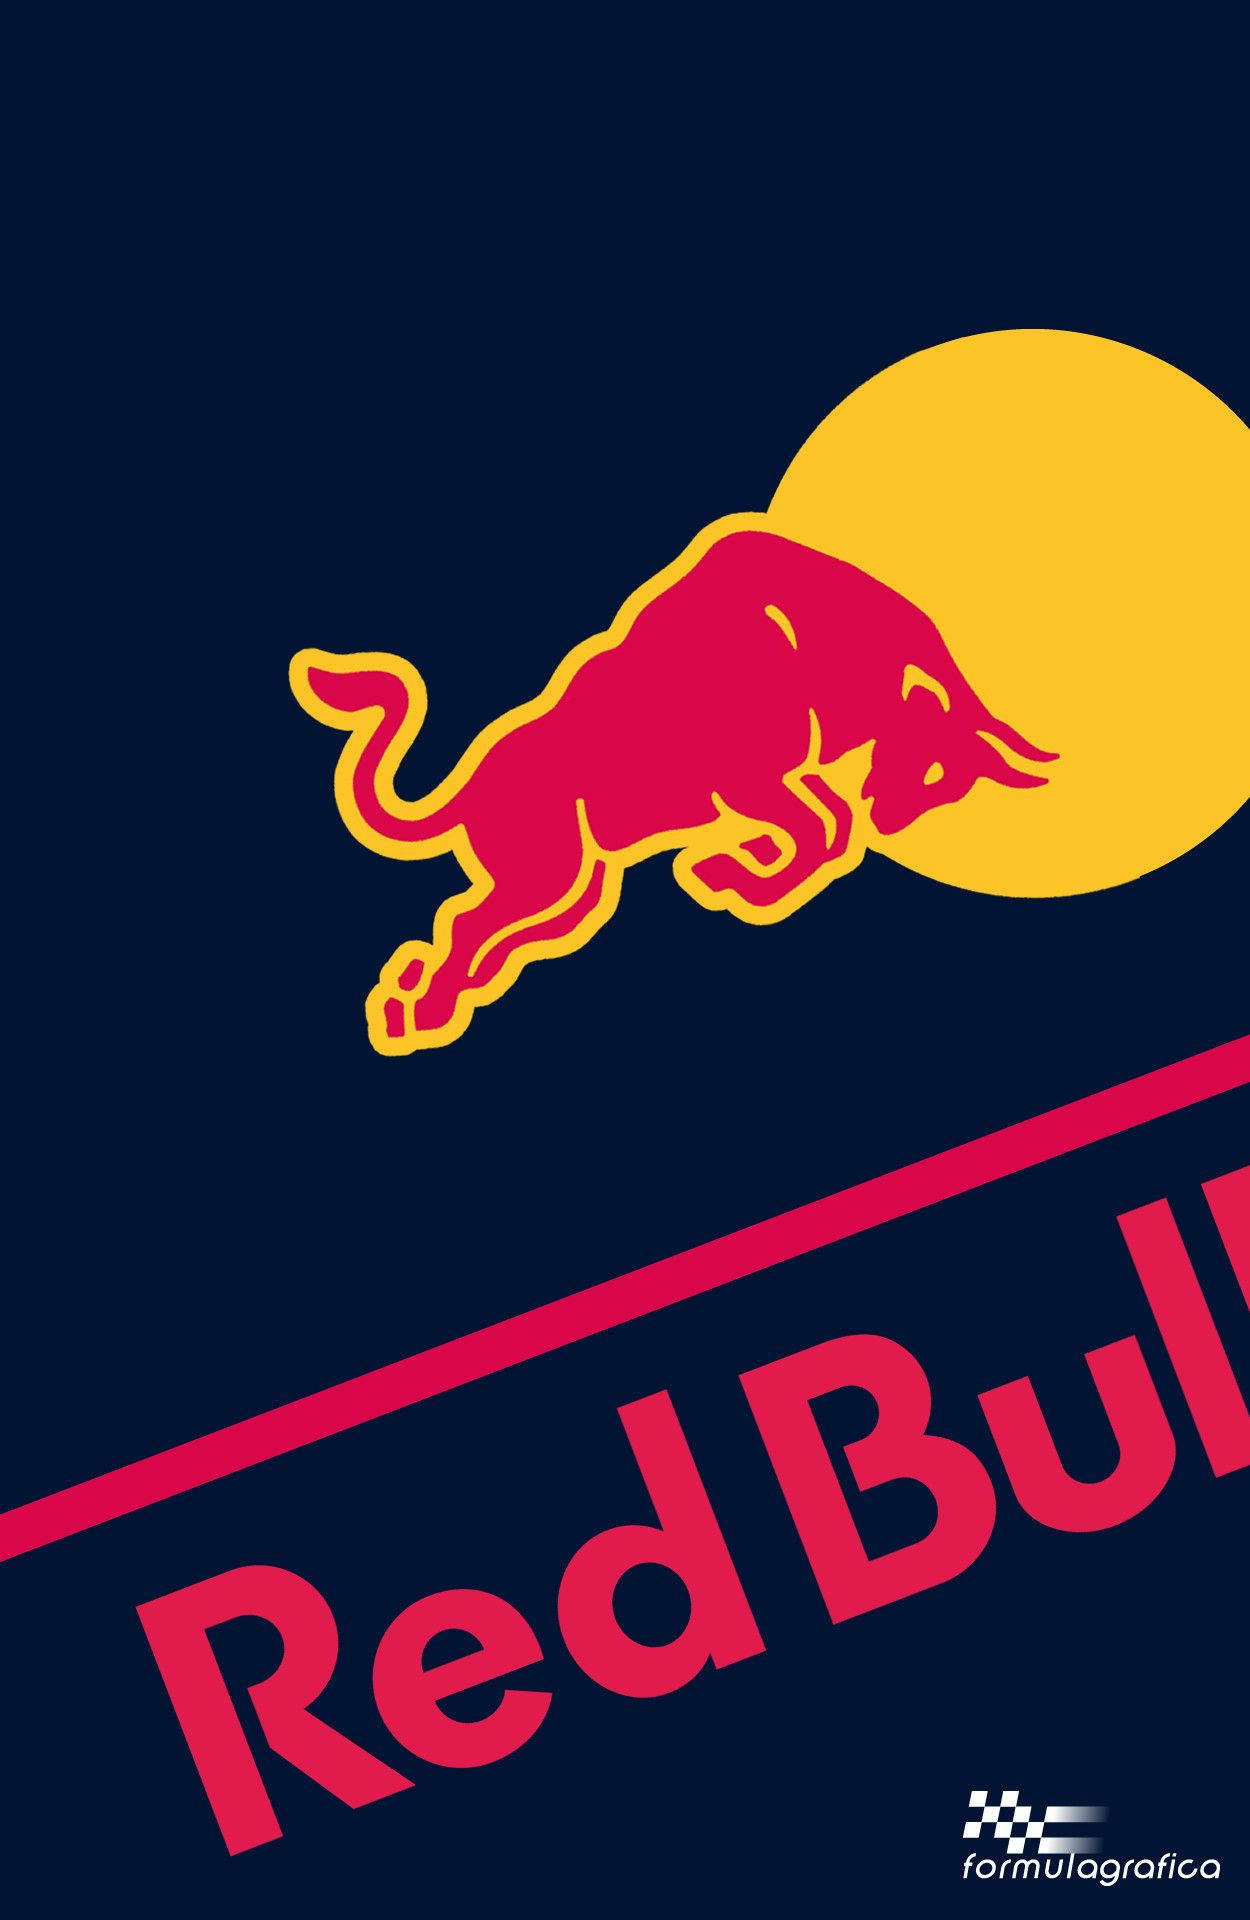 Red Bull Logo Wallpapers Top Free Red Bull Logo Backgrounds